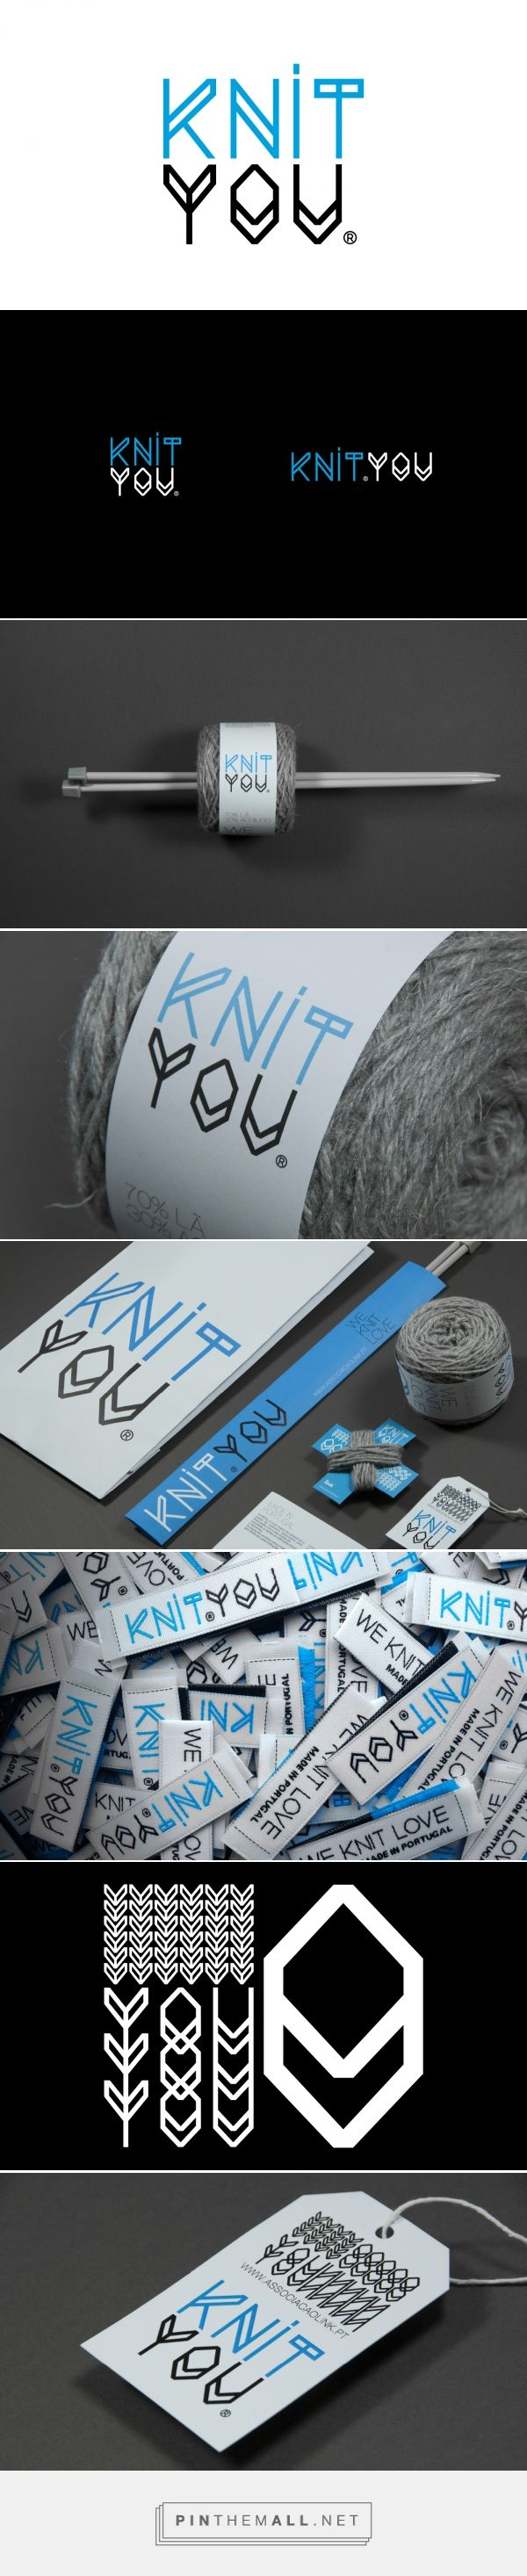 KnitYou branding identity packaging on Behance by Uma Brand Studio curated by Packaging Diva PD. Who wants to learn how to knit now?